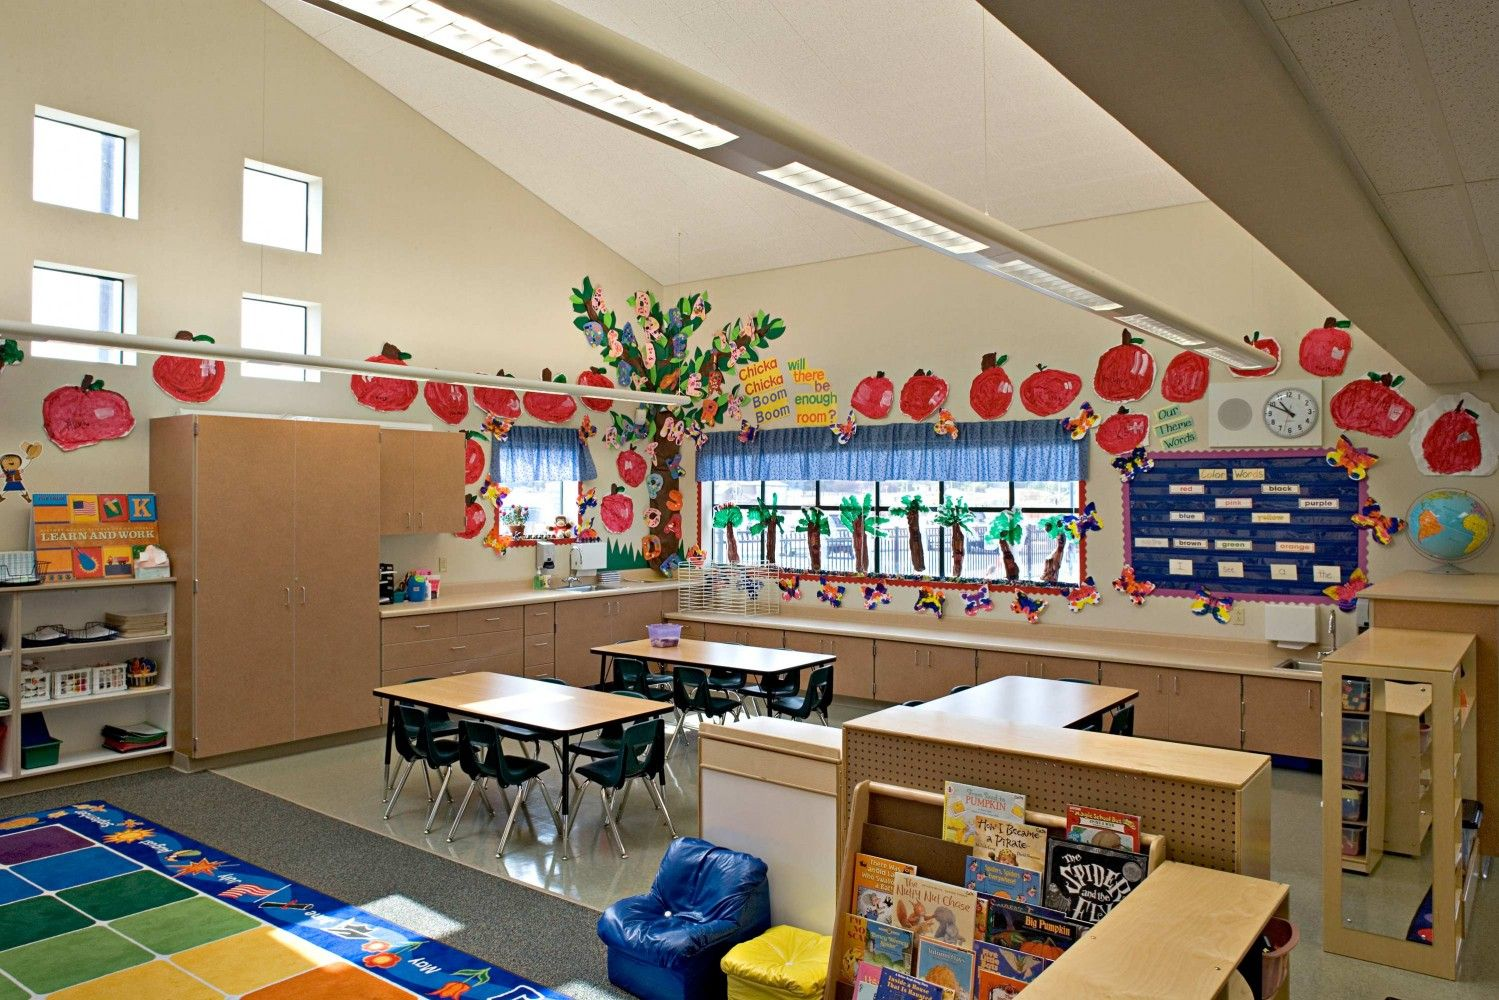 Innovative Art Classroom Design ~ Elementary classroom design barrett ranch